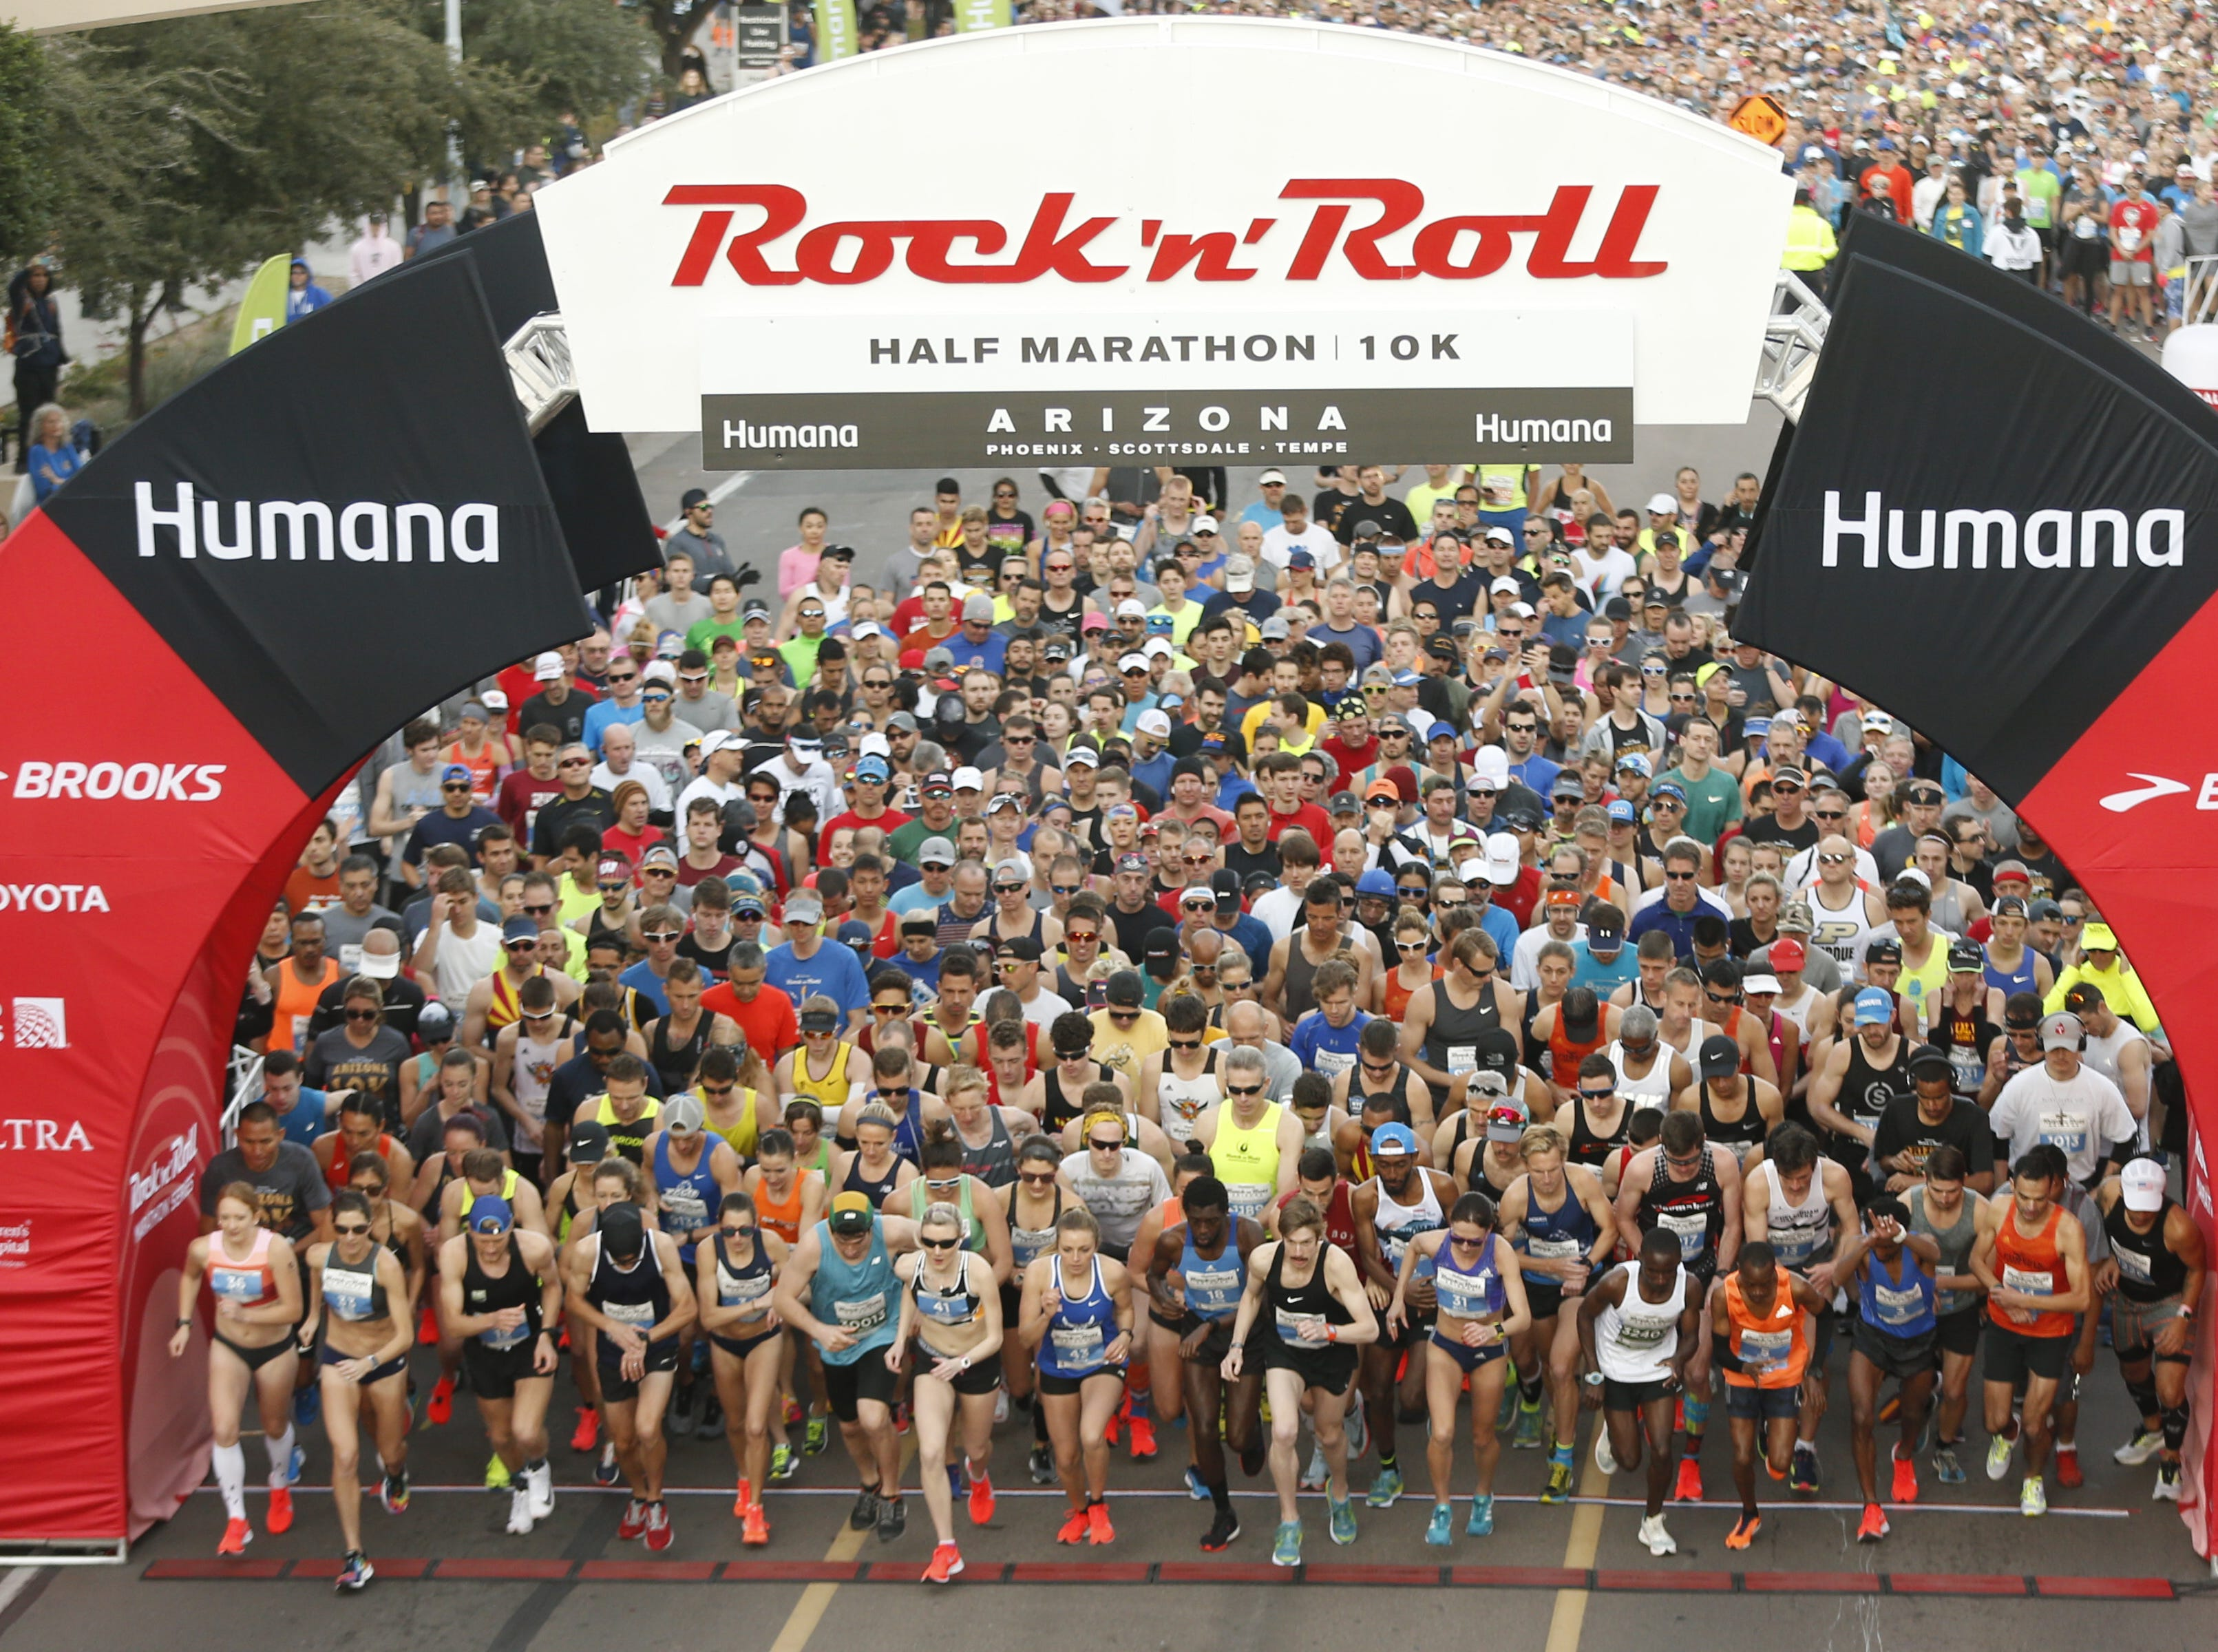 The elite runners take off from the start line during the Rock 'N' Roll half-marathon in Tempe on Jan. 20, 2019.